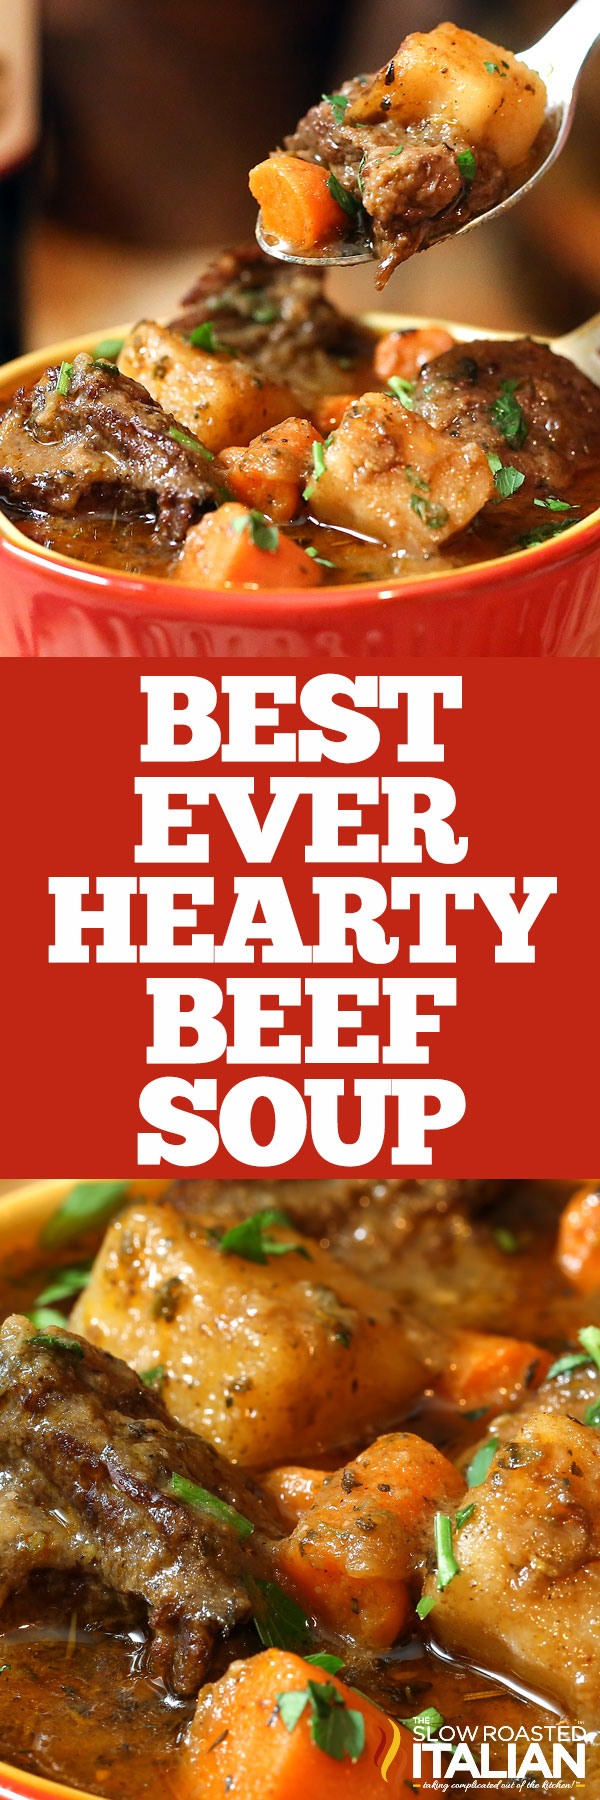 titled image (and shown): best ever beef vegetable soup recipe